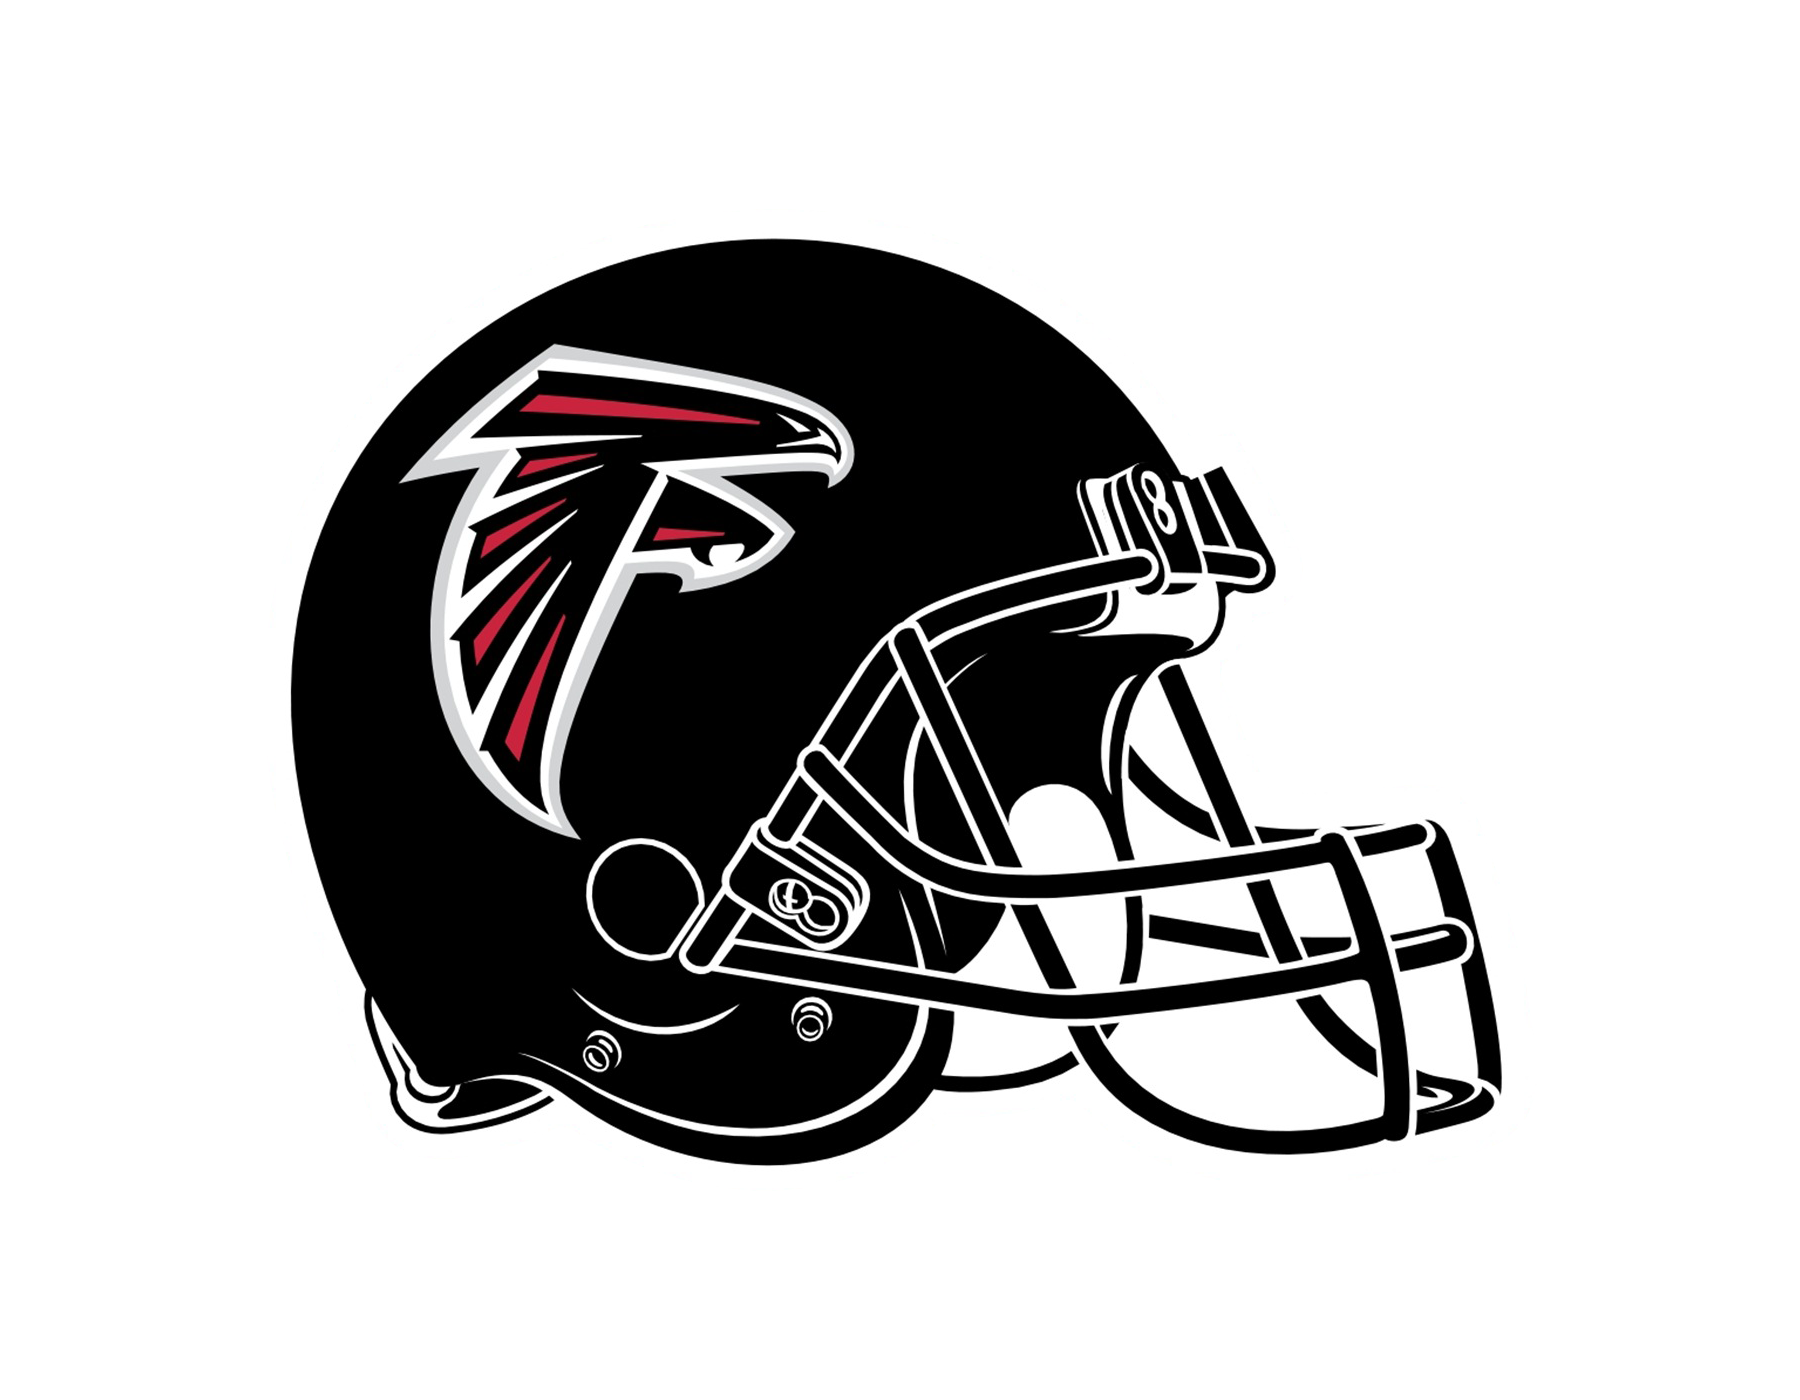 Falcons football helmet clipart png library library Atlanta Falcons Logo PNG Transparent & SVG Vector - Freebie Supply png library library